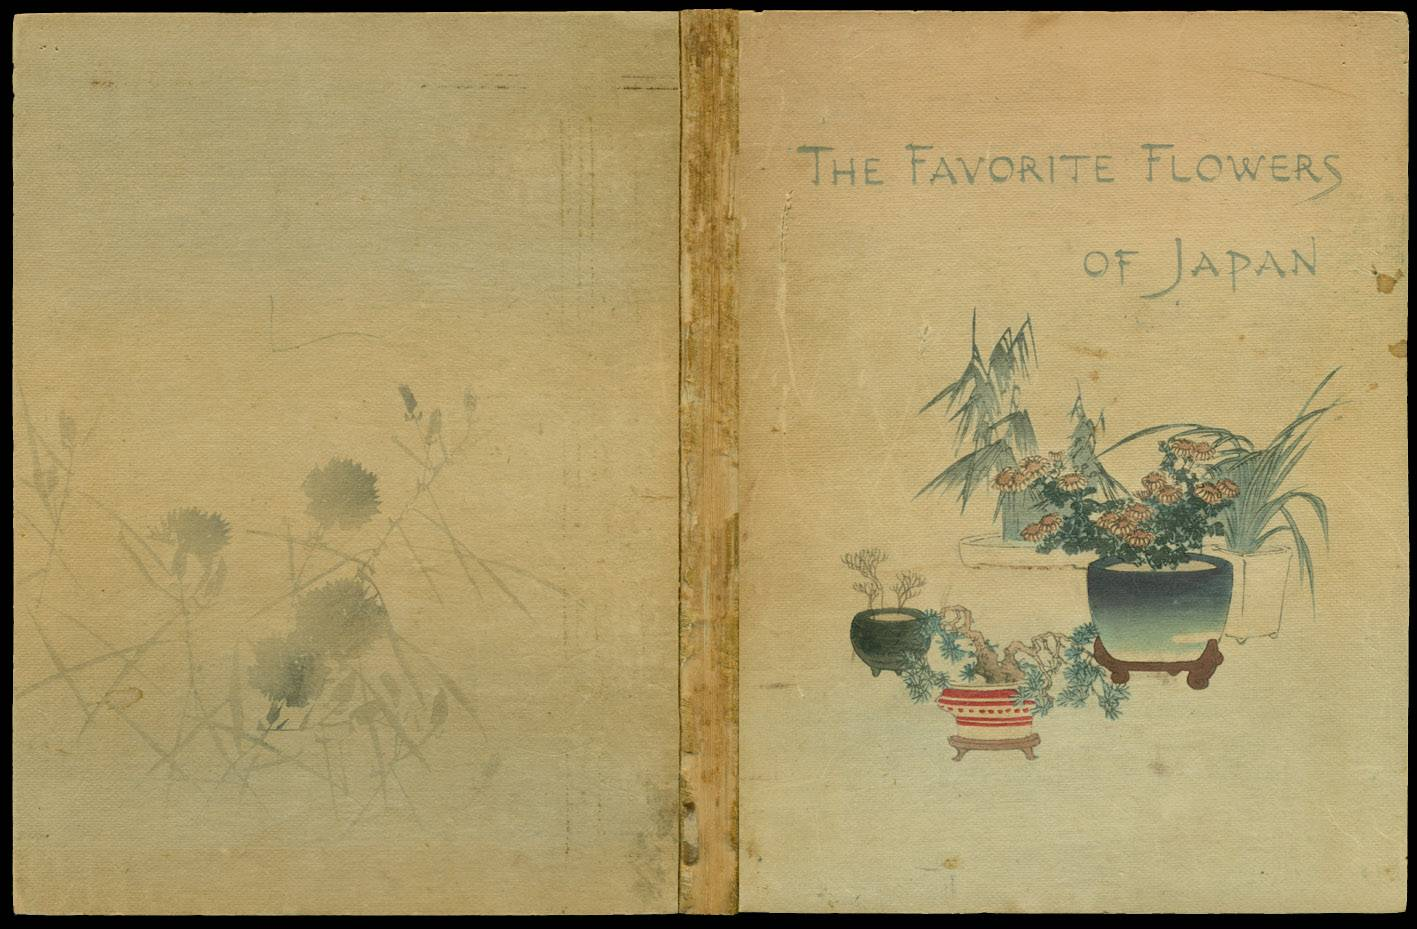 Book 1911101215c, The Favorite Flowers of Japan, Third Edition, 1911 ...